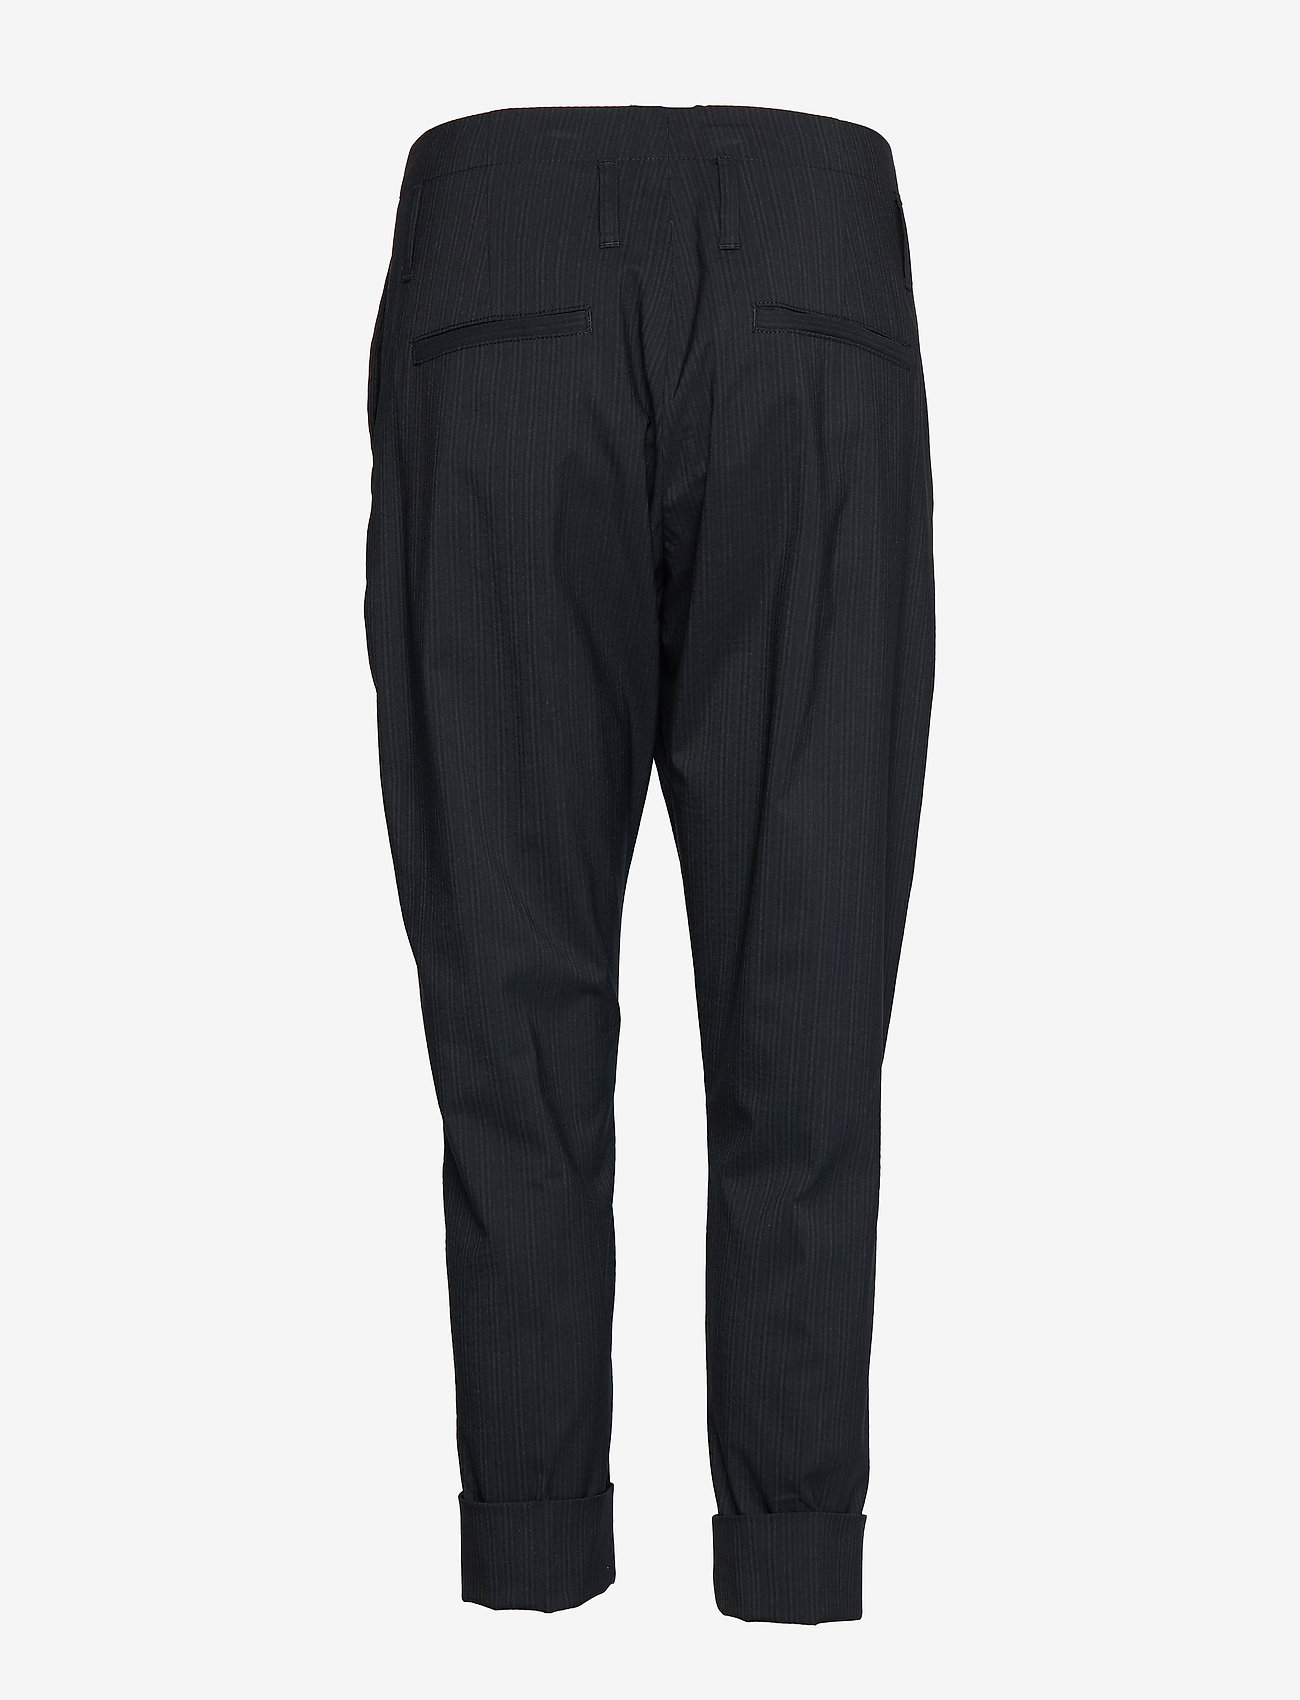 Hope Law Trousers -